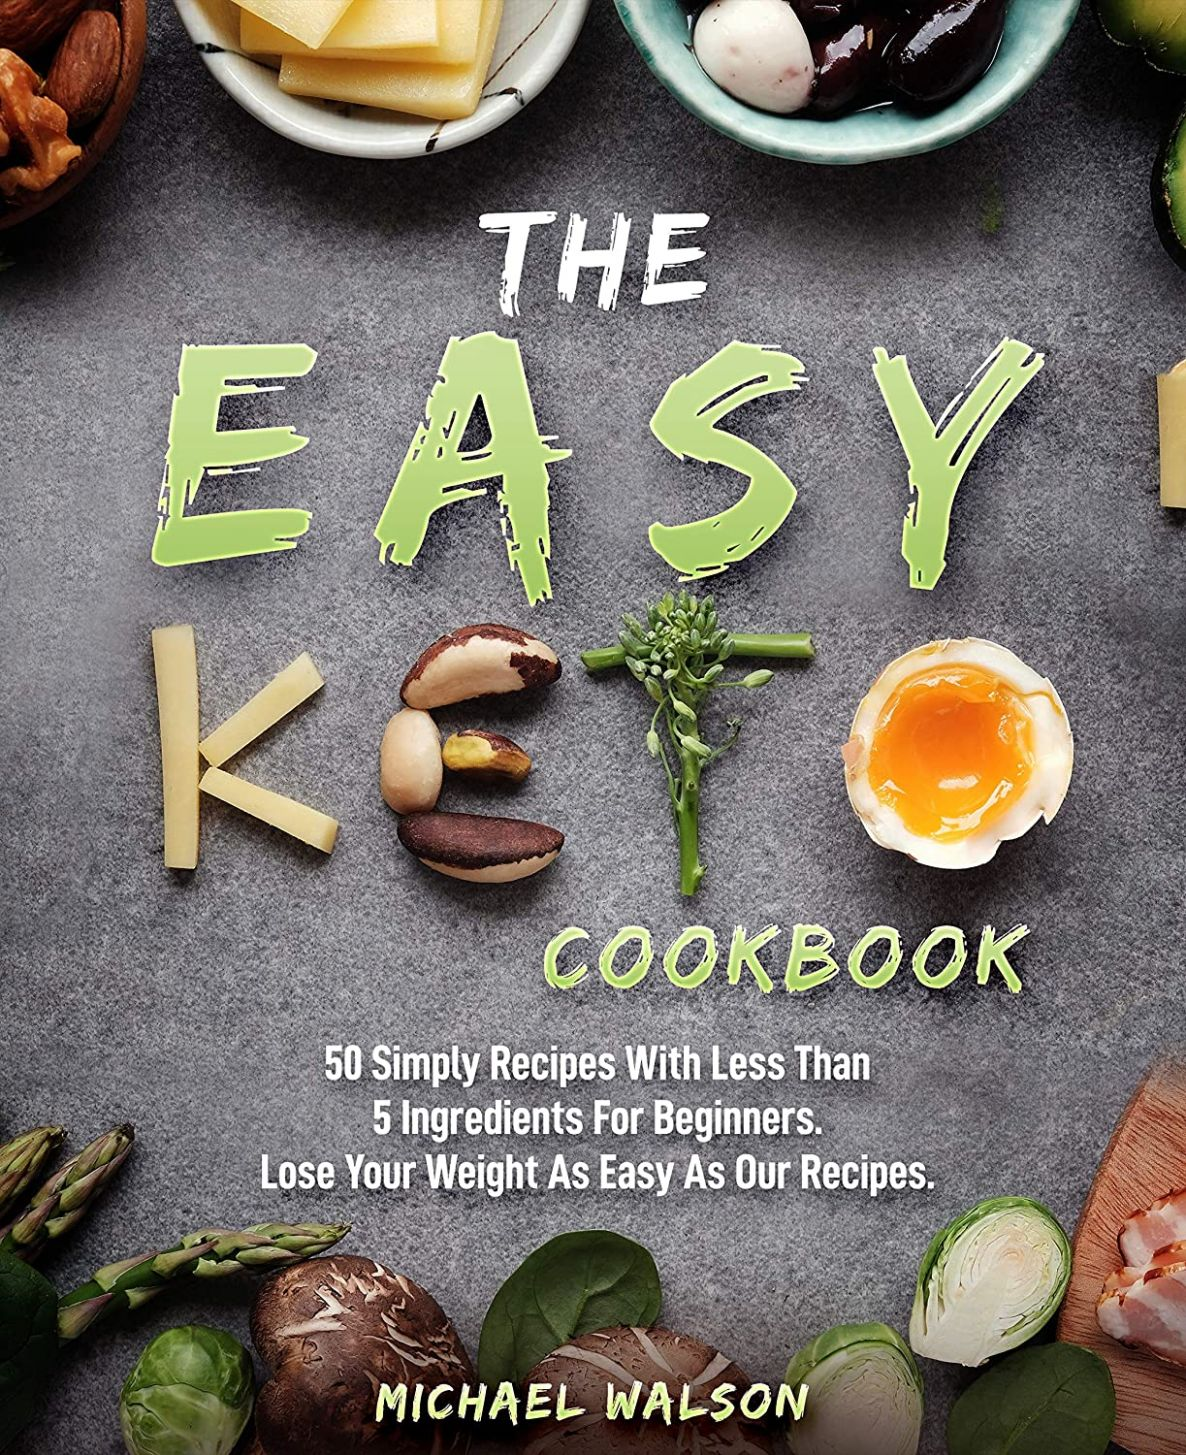 The Easy Keto Cookbook: 8 Simply Recipes With Less Than 8 ...